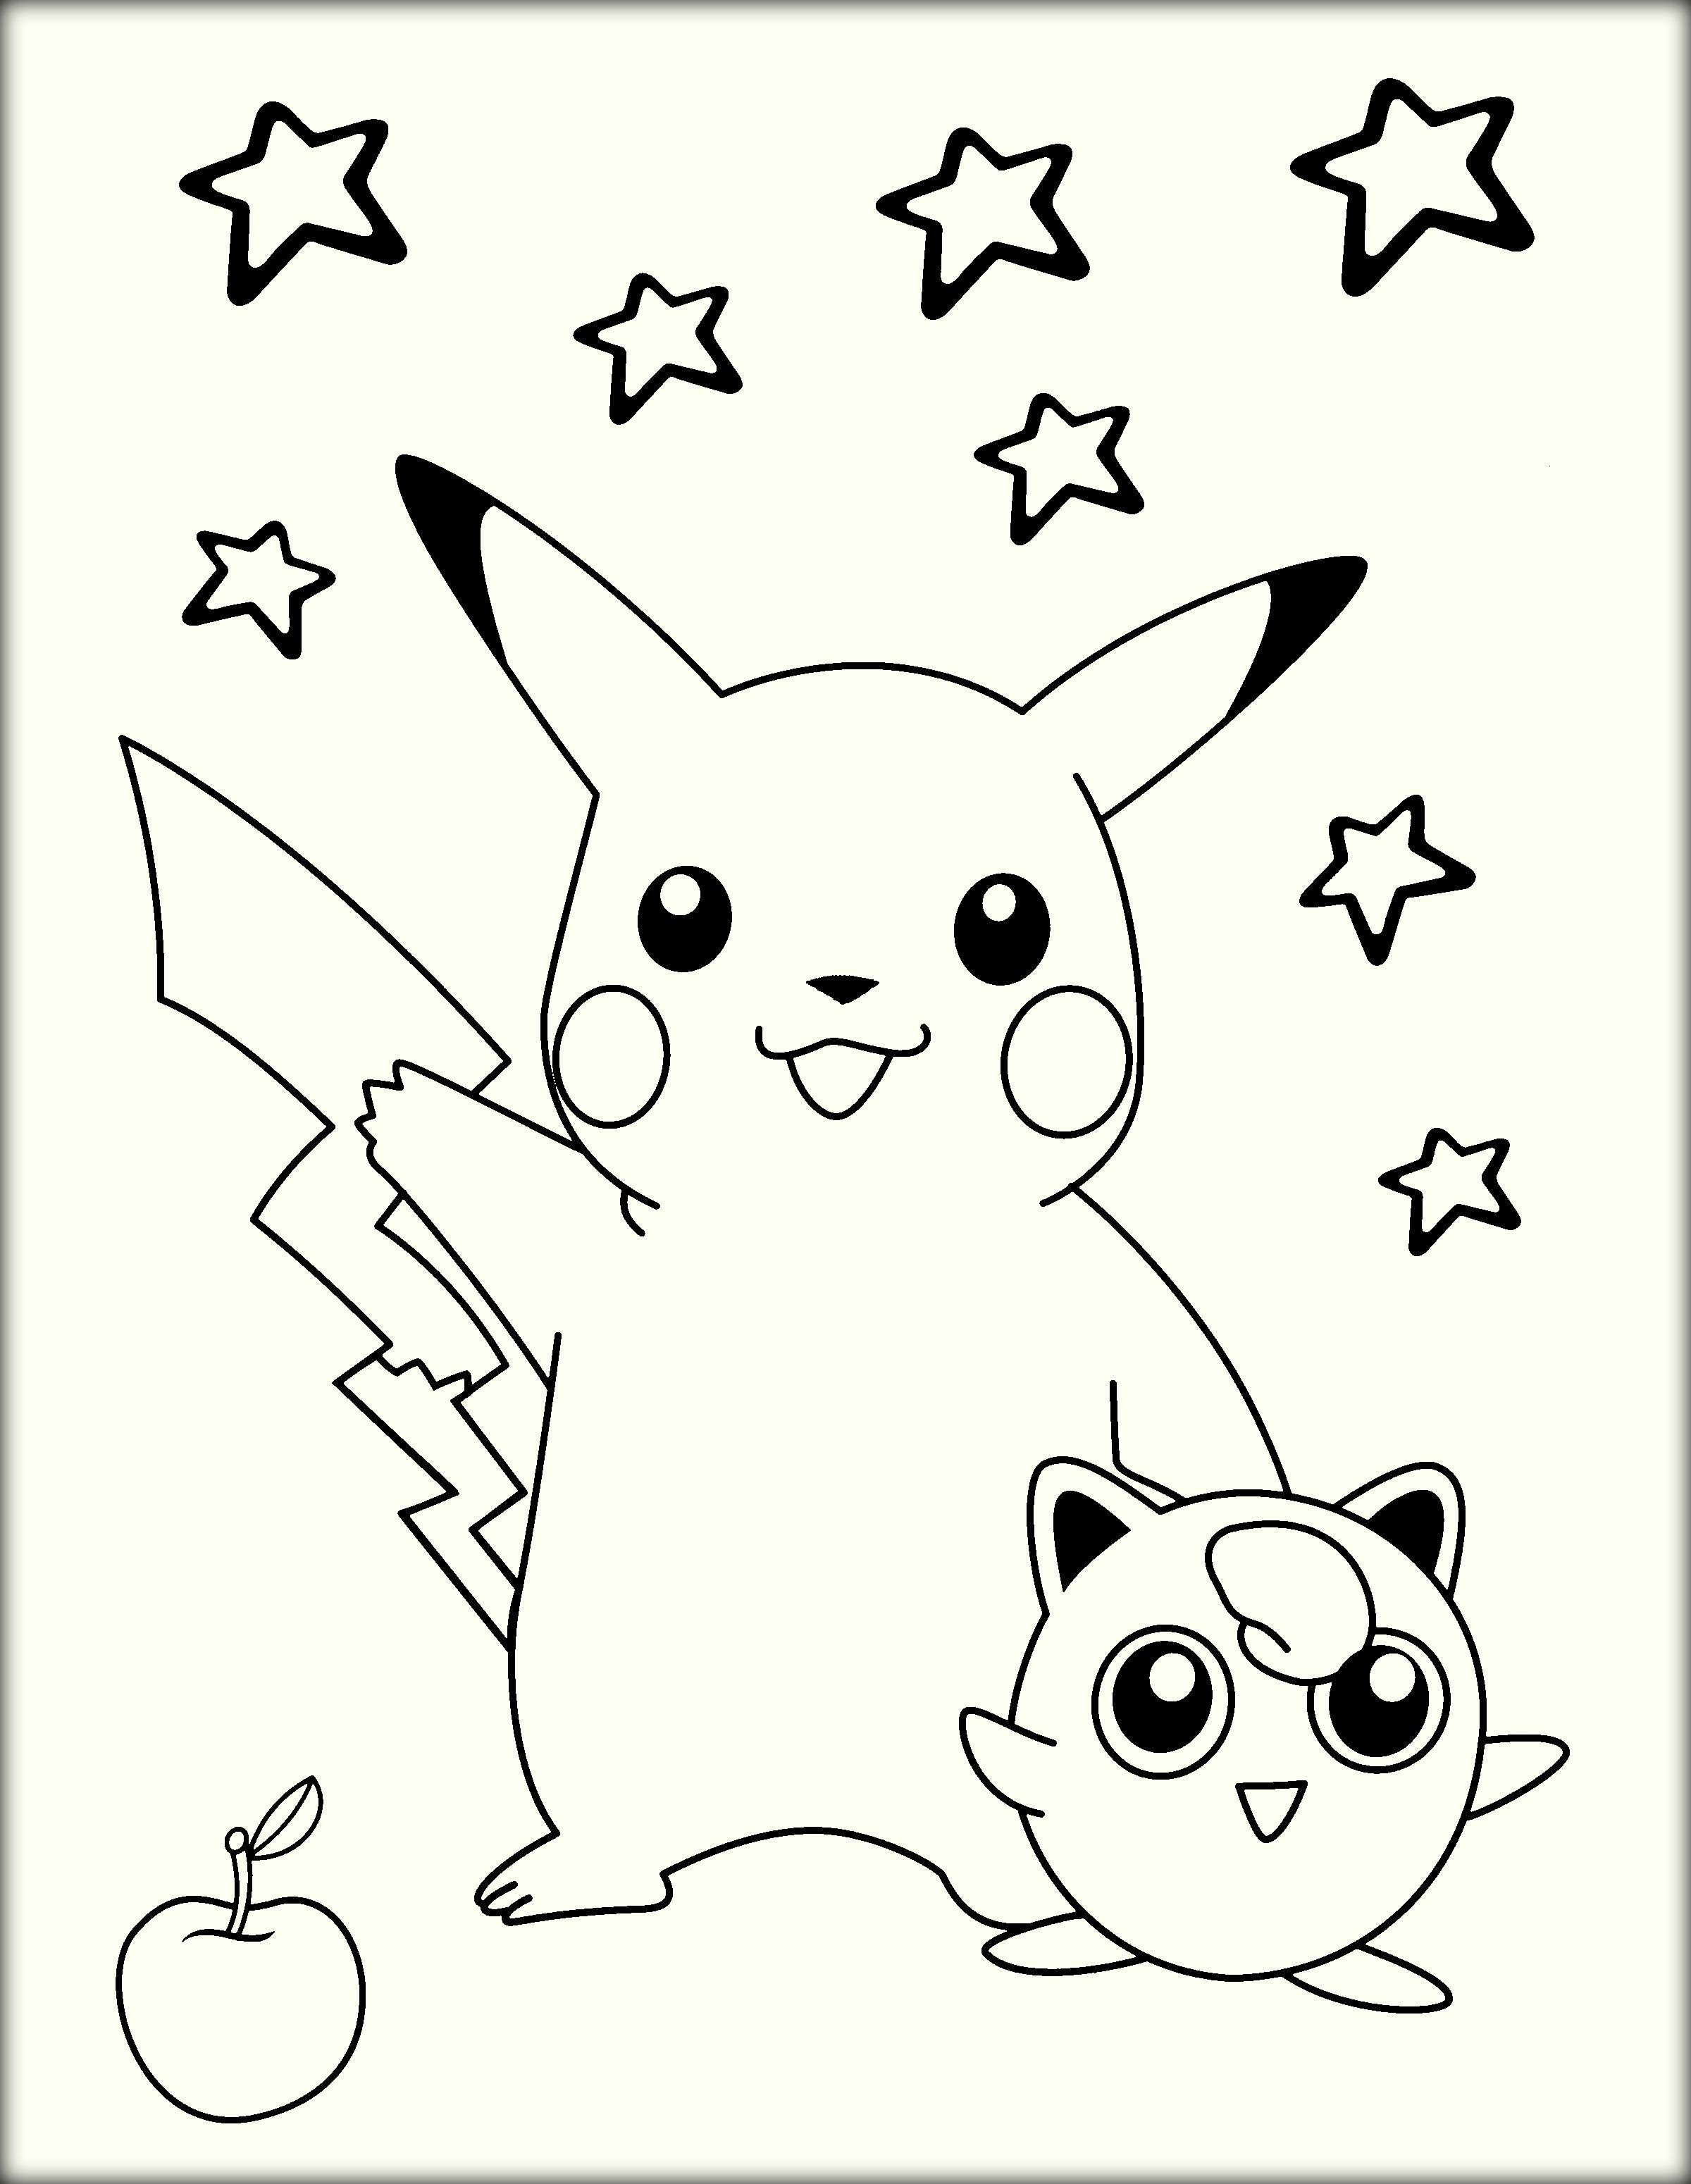 Pokemon Coloring Pages Snorlax At Getcolorings